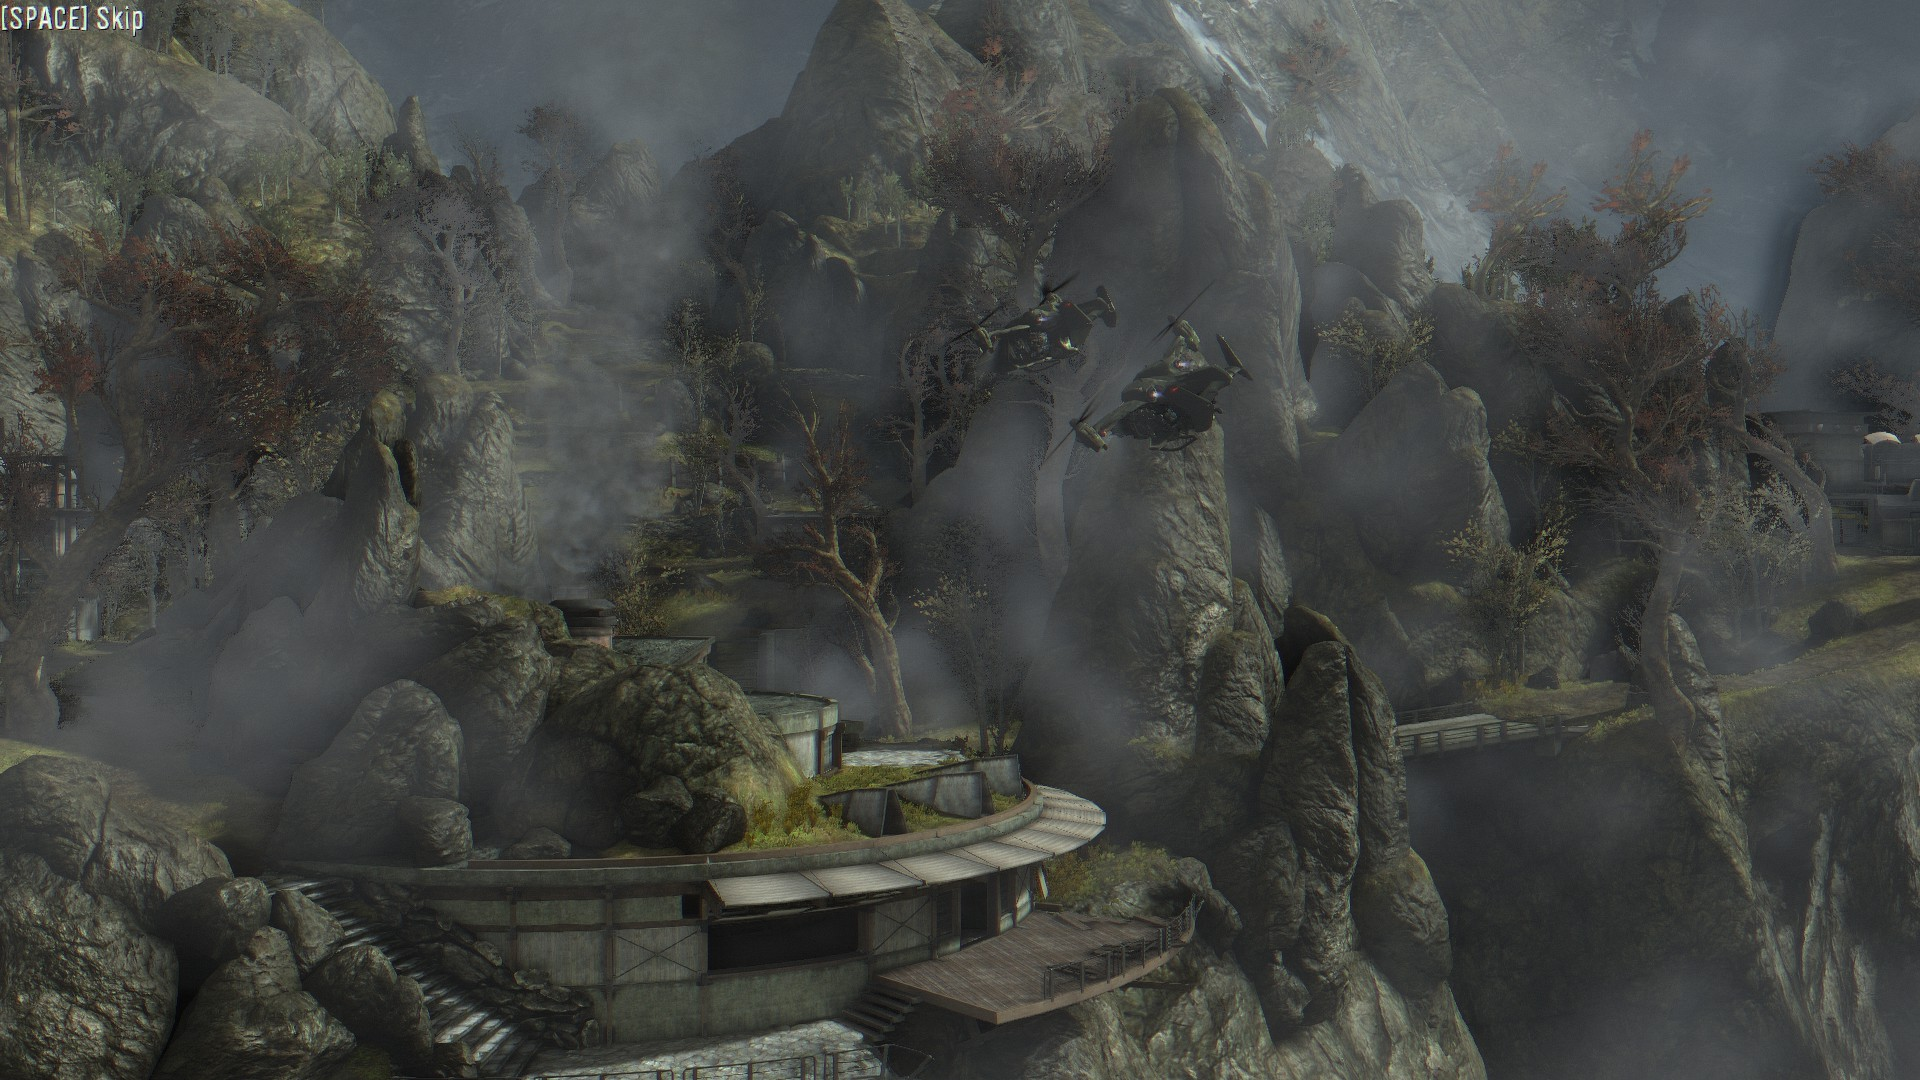 Halo: The Master Chief Collection - SMAA Anti Aliasing and Chromatic Aberration Guide